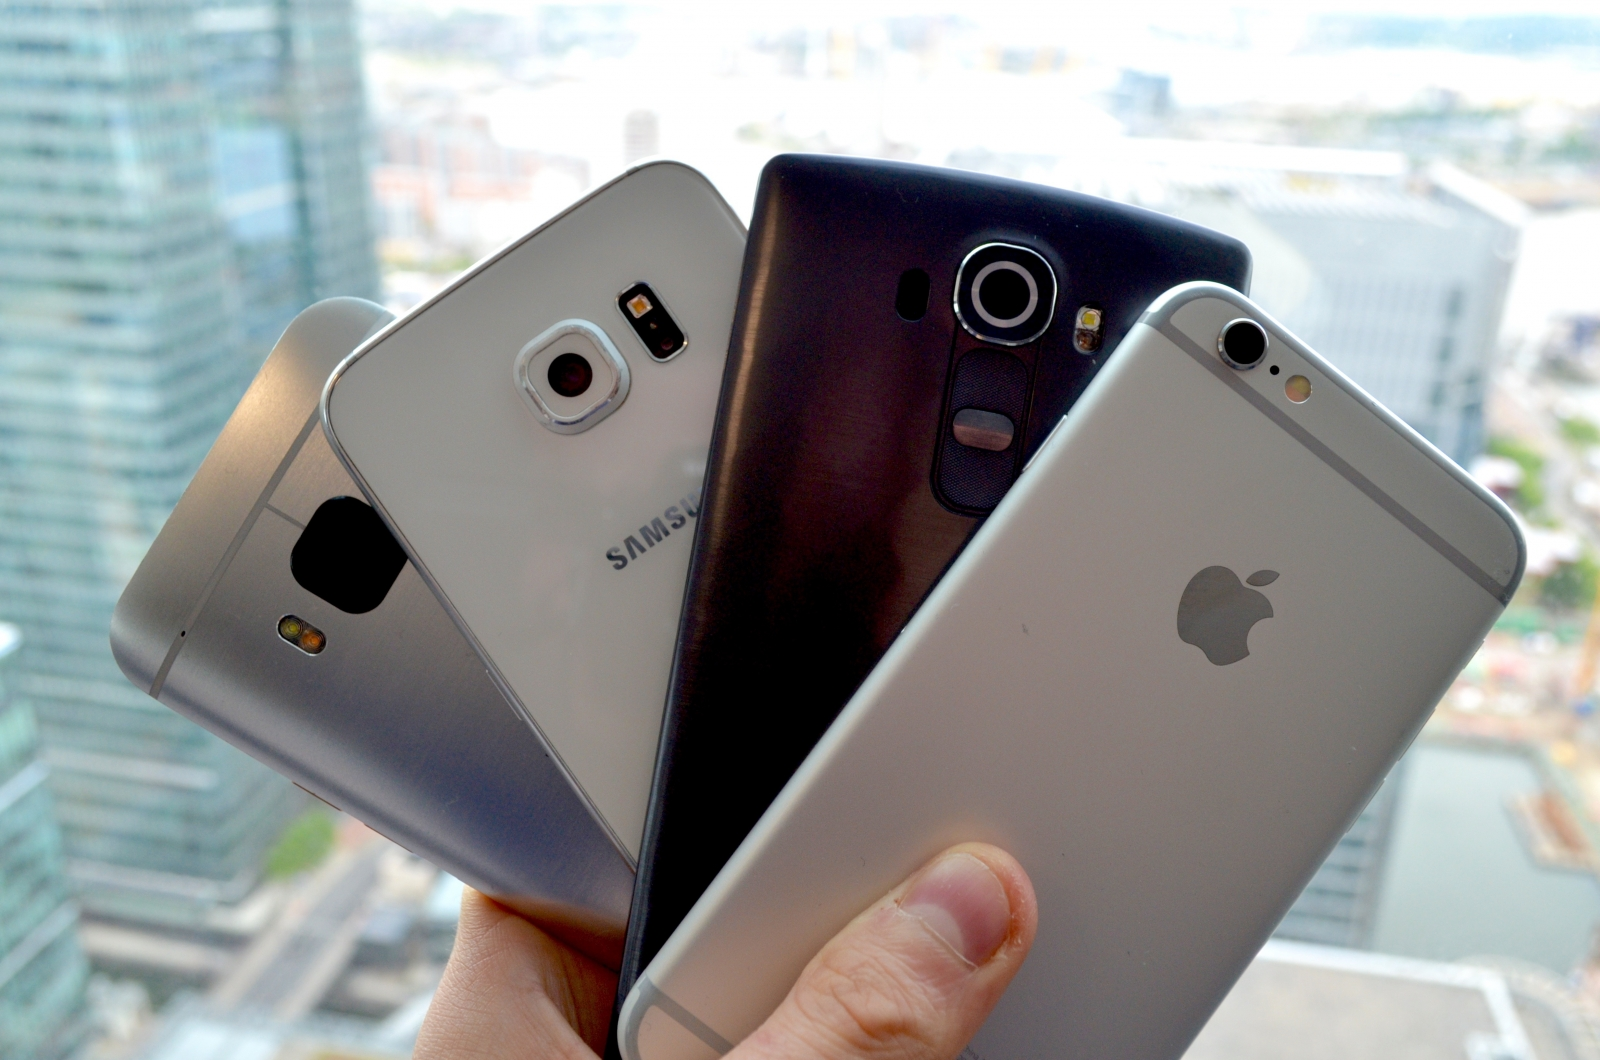 iPhone 6 Galaxy S6, One M9, G4